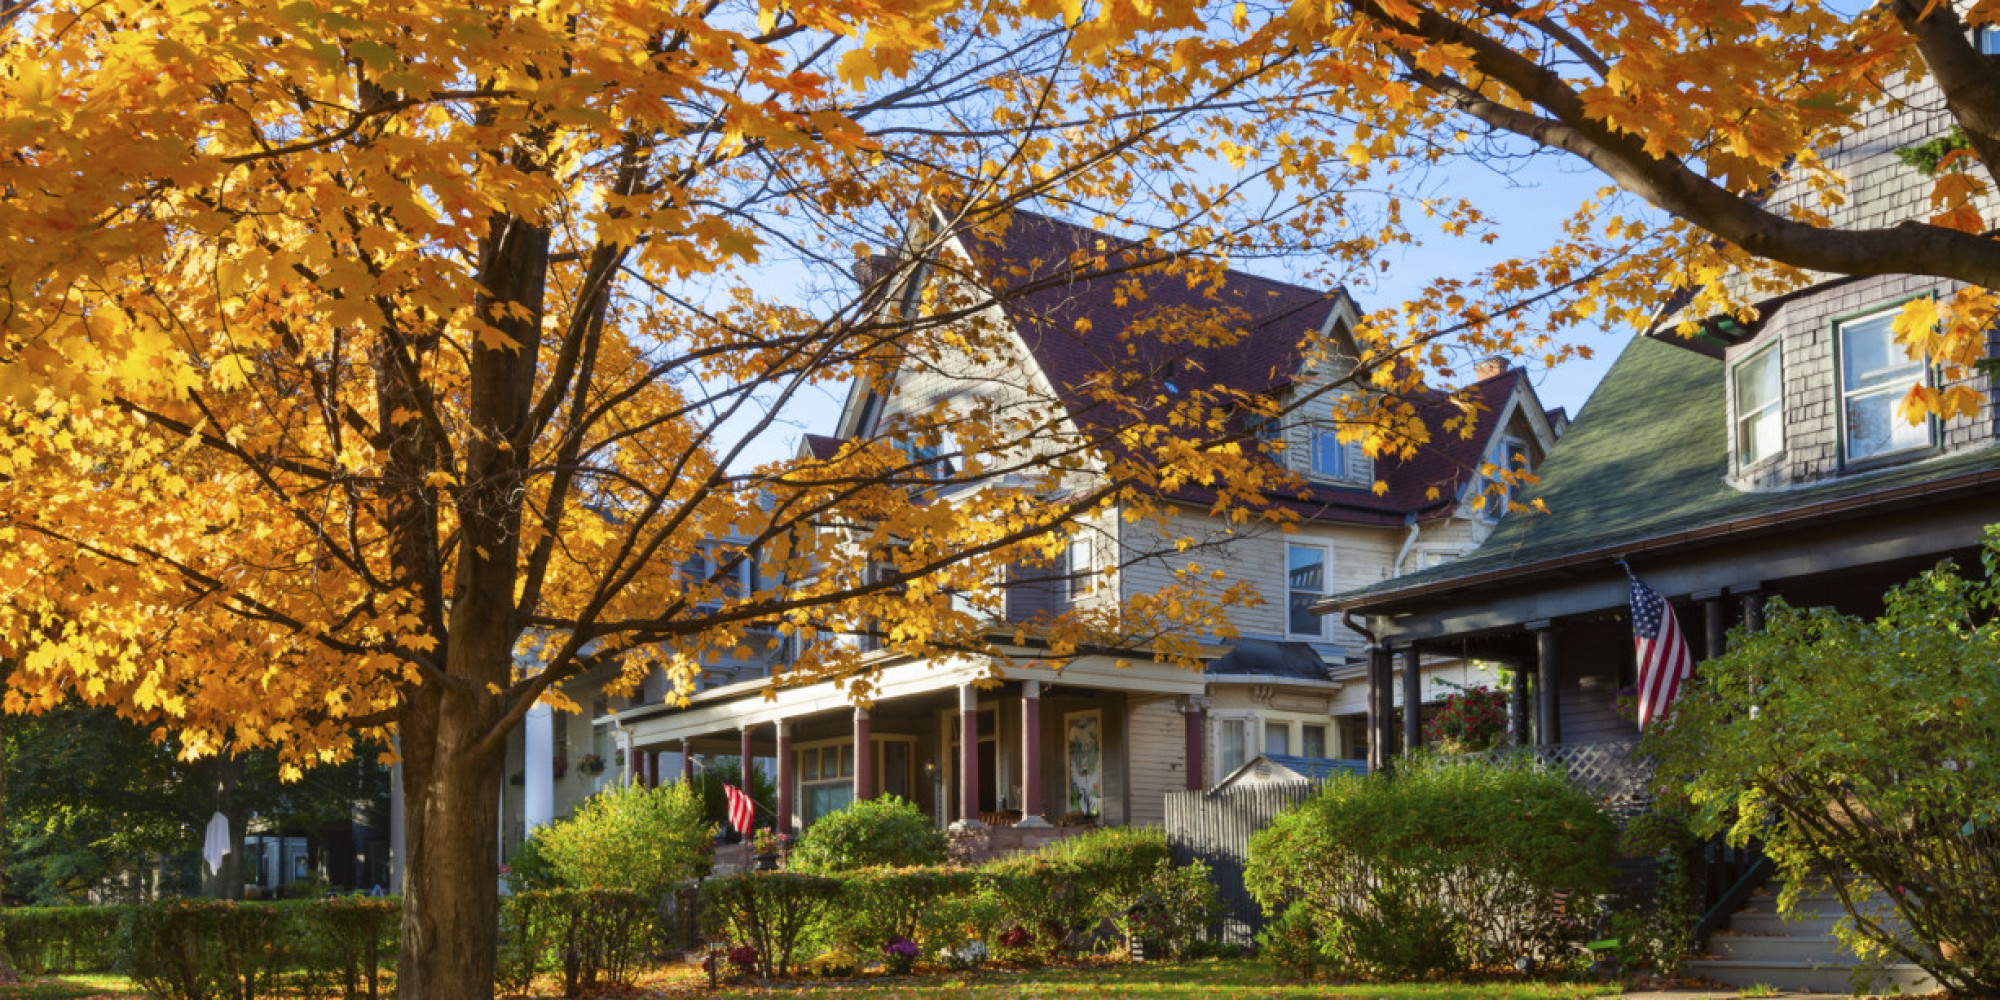 Fall Birch Tree Wallpaper The 10 Most Beautiful Neighborhoods In America Ranked